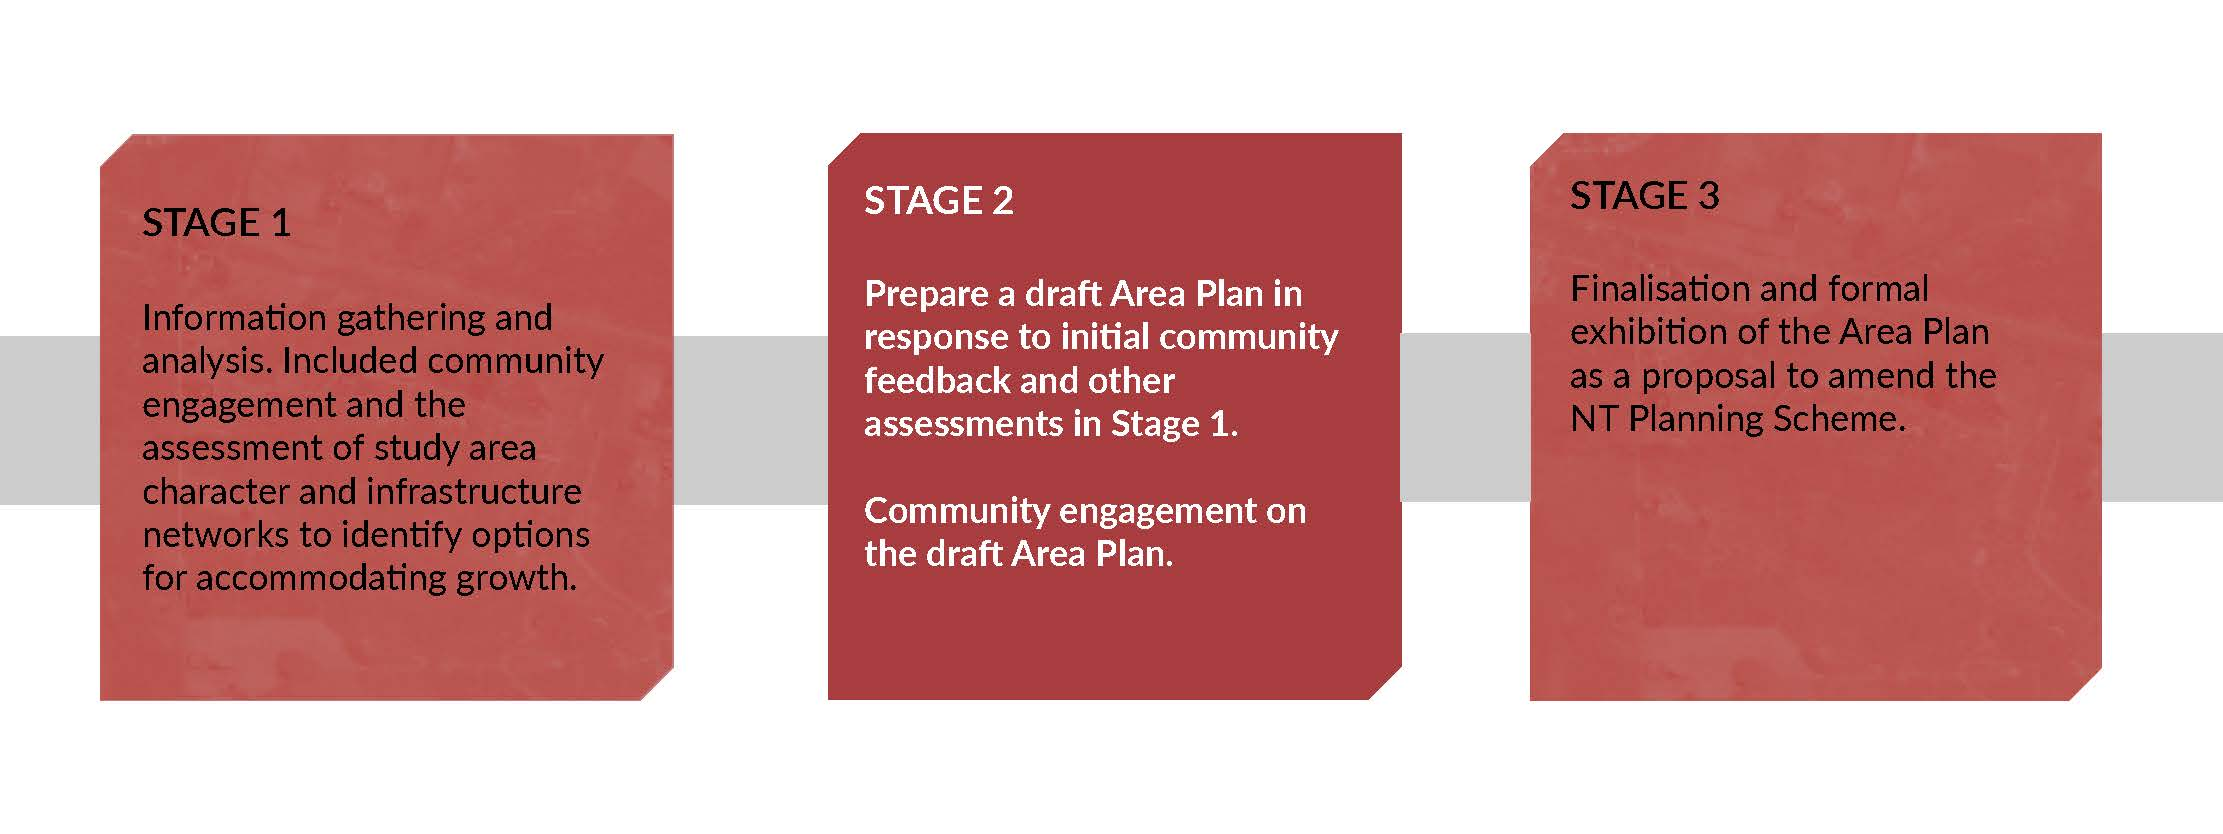 3 stage process image. Stage 2 is highlighted as the current stage